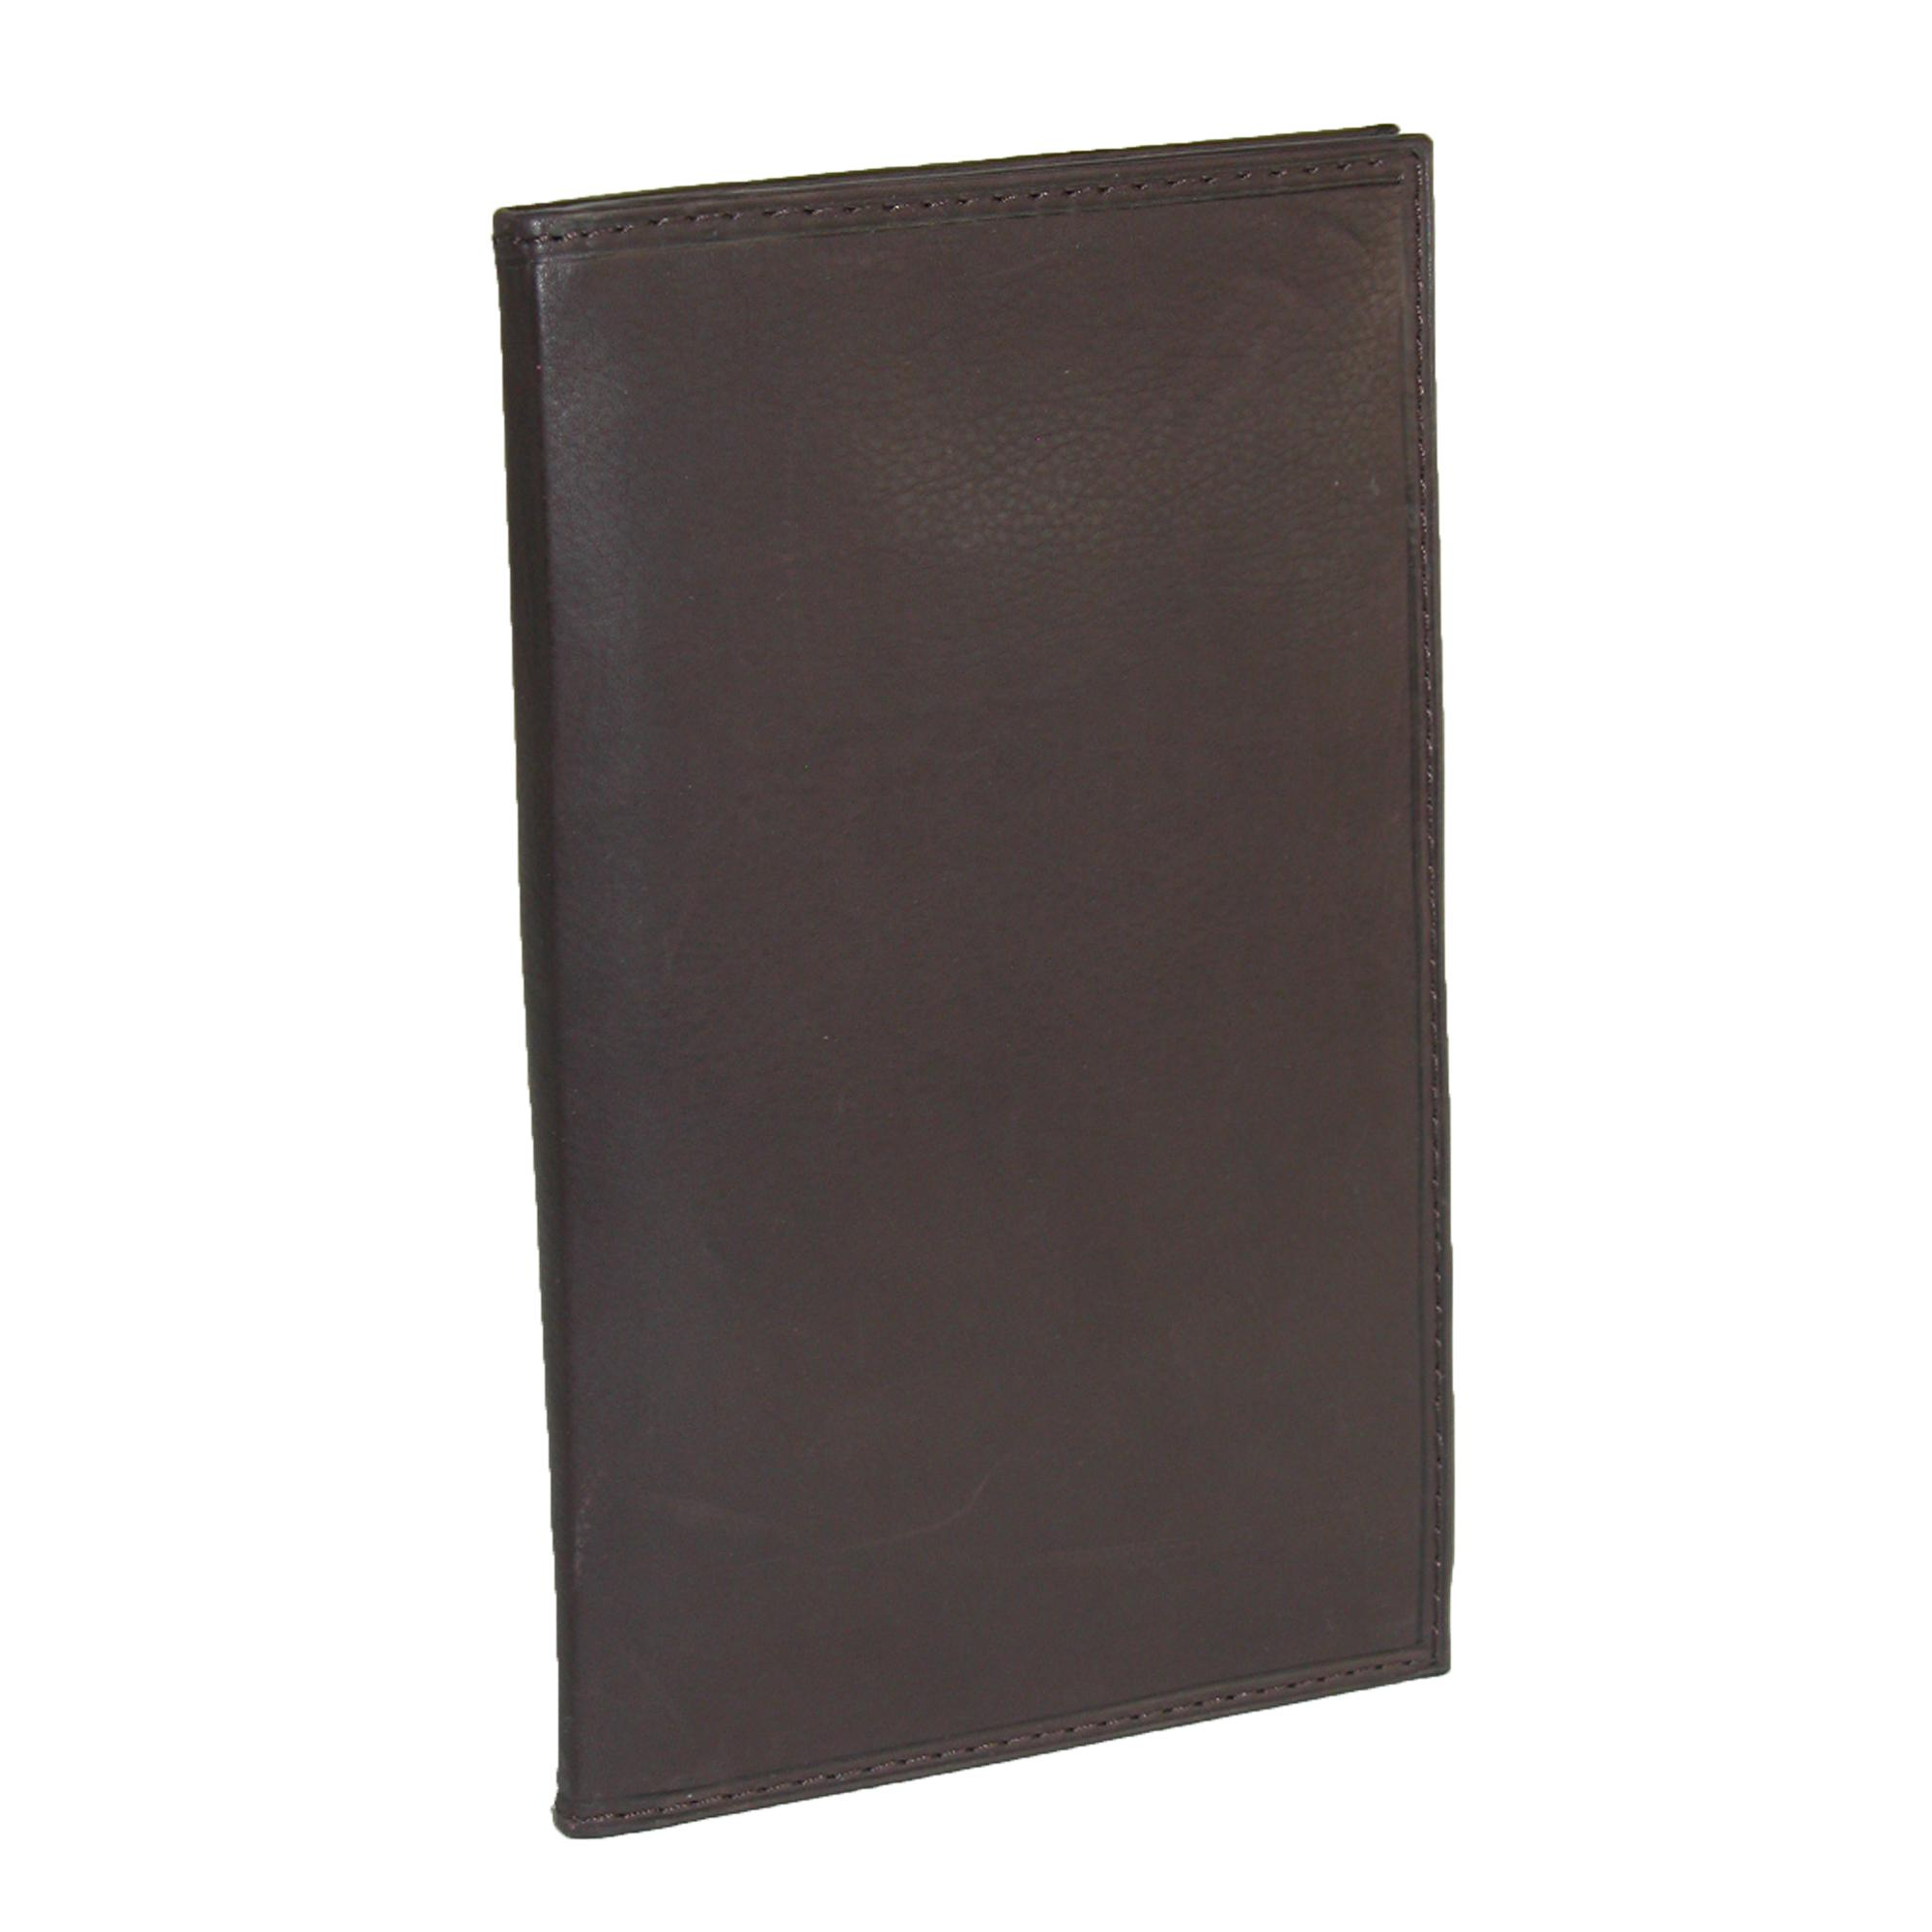 Paul_&_Taylor_Women's_Leather_Long_Credit_Card_Organizational_Wallet_-